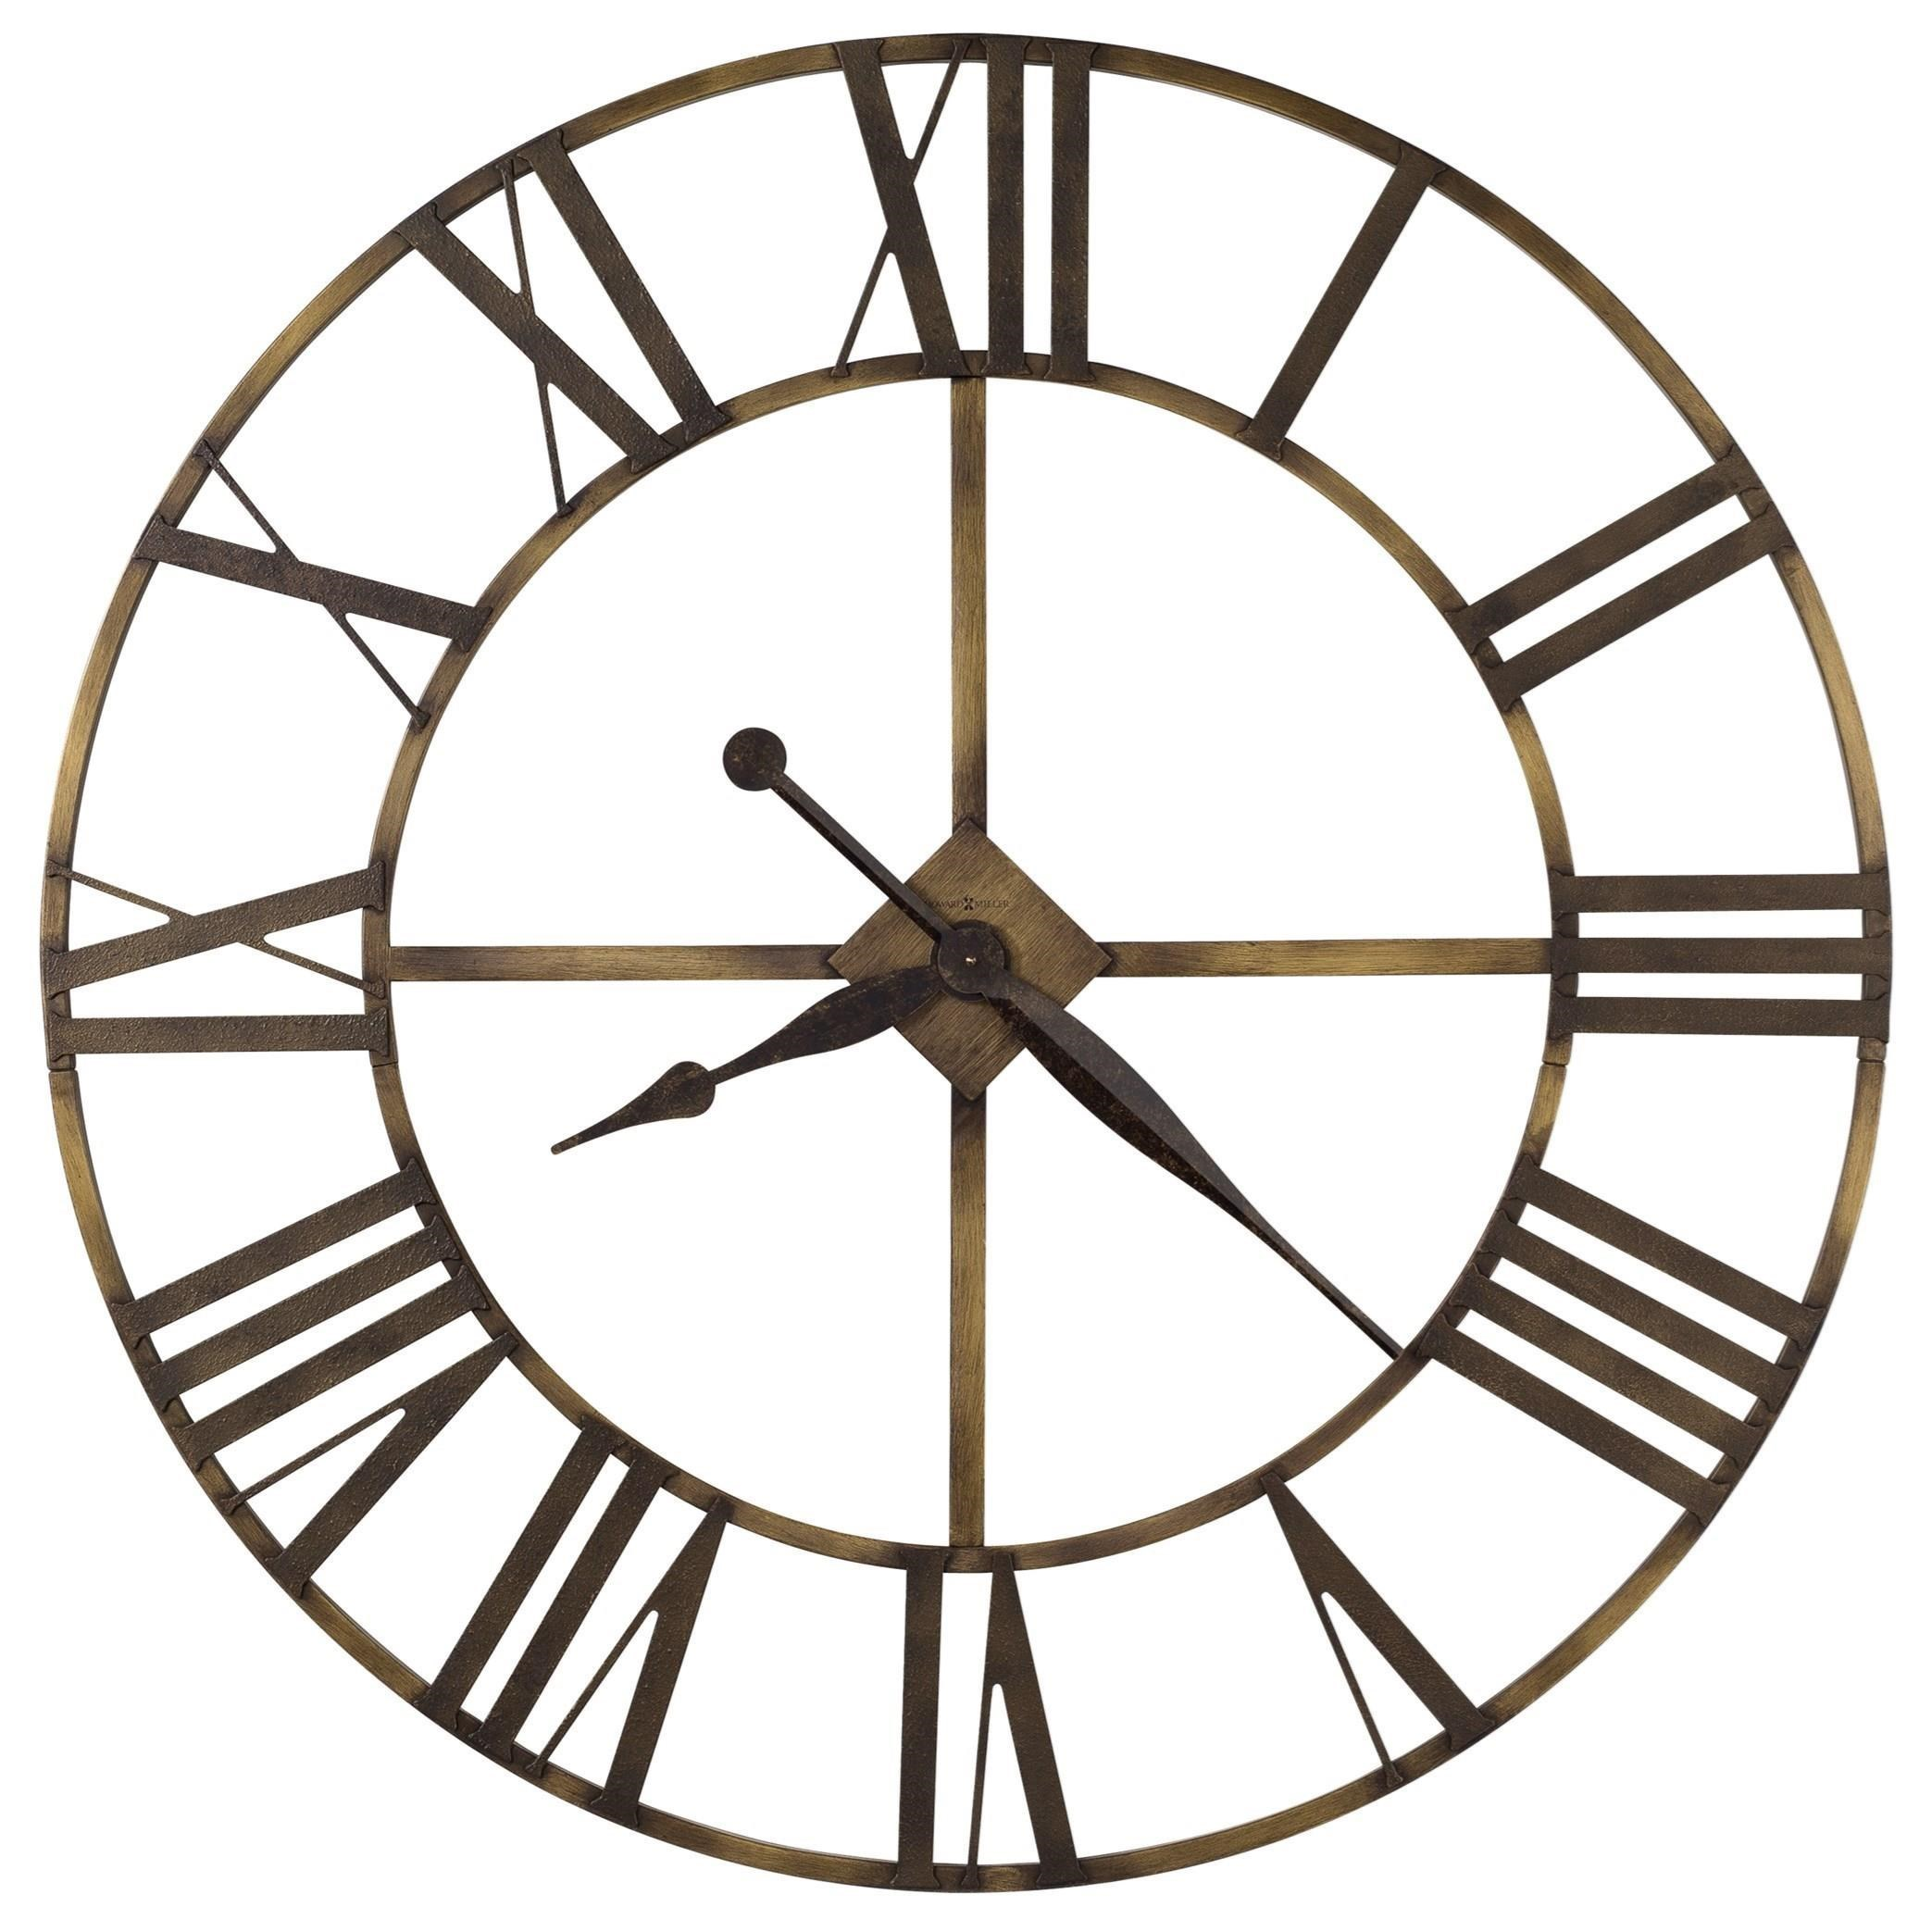 Howard Miller Wall Clocks Wingate Wall Clock - Item Number: 625-566